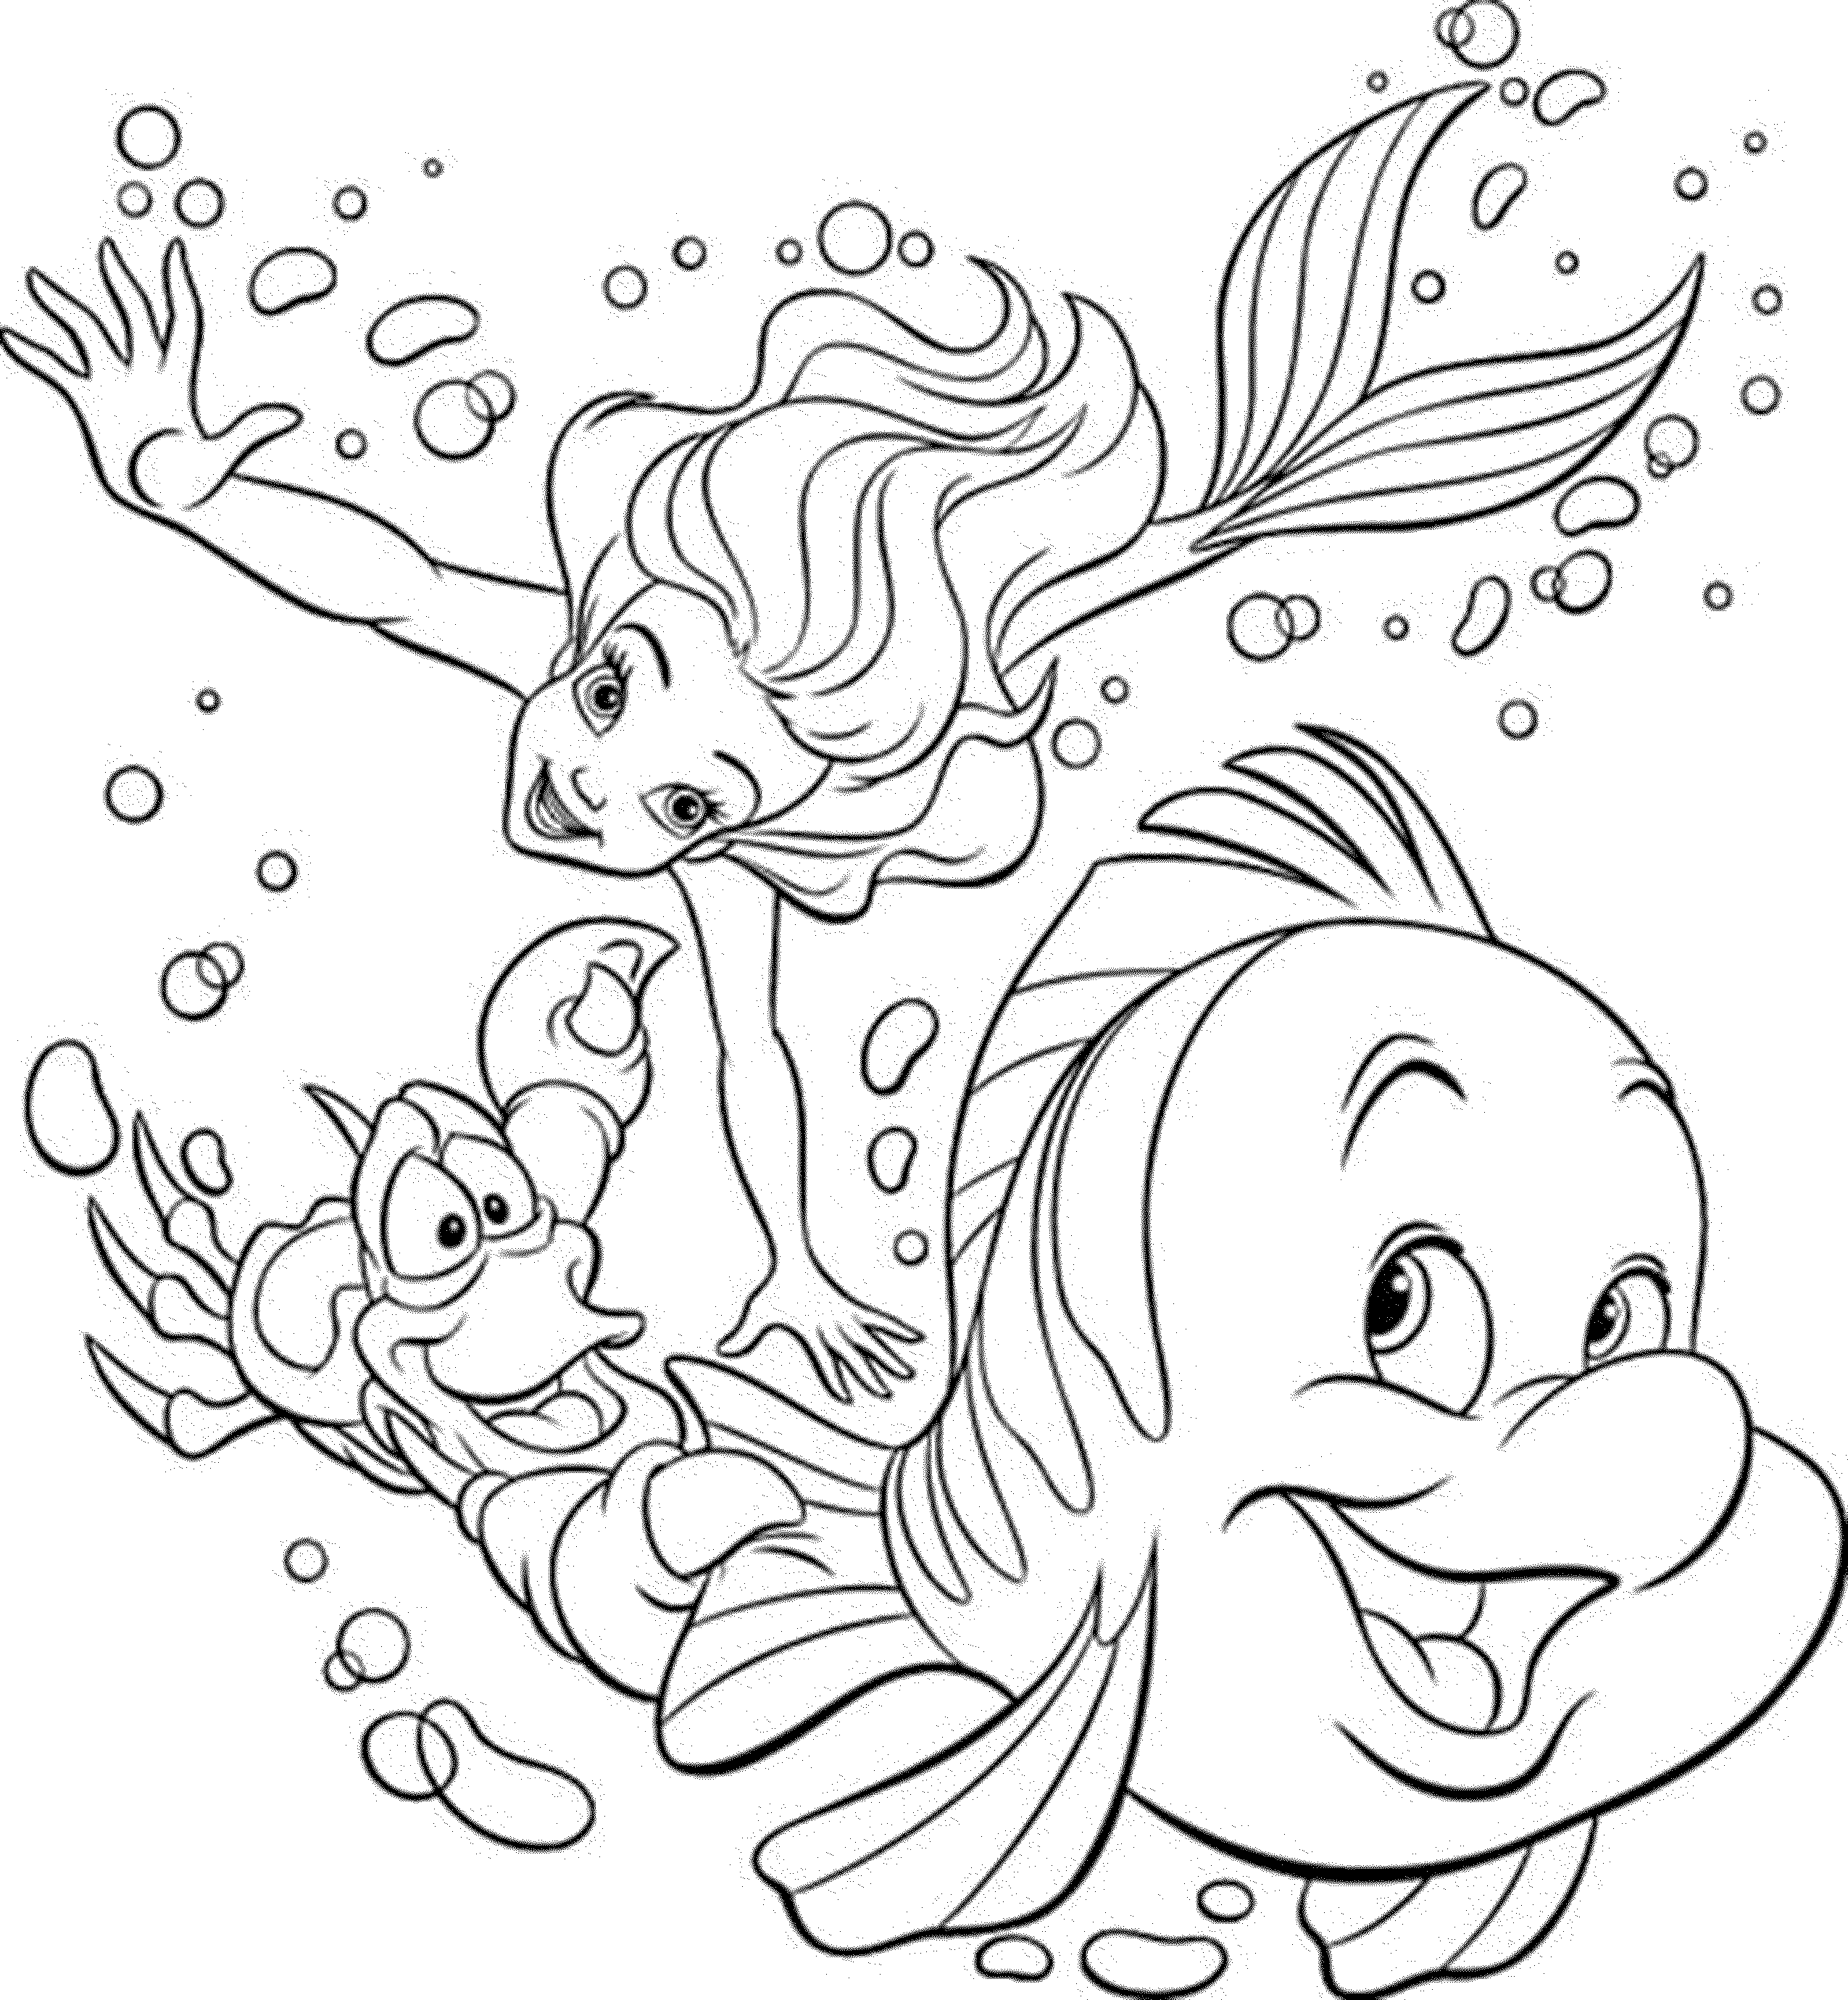 adult coloring page funny - Google Search | my | Pinterest | Funny ...